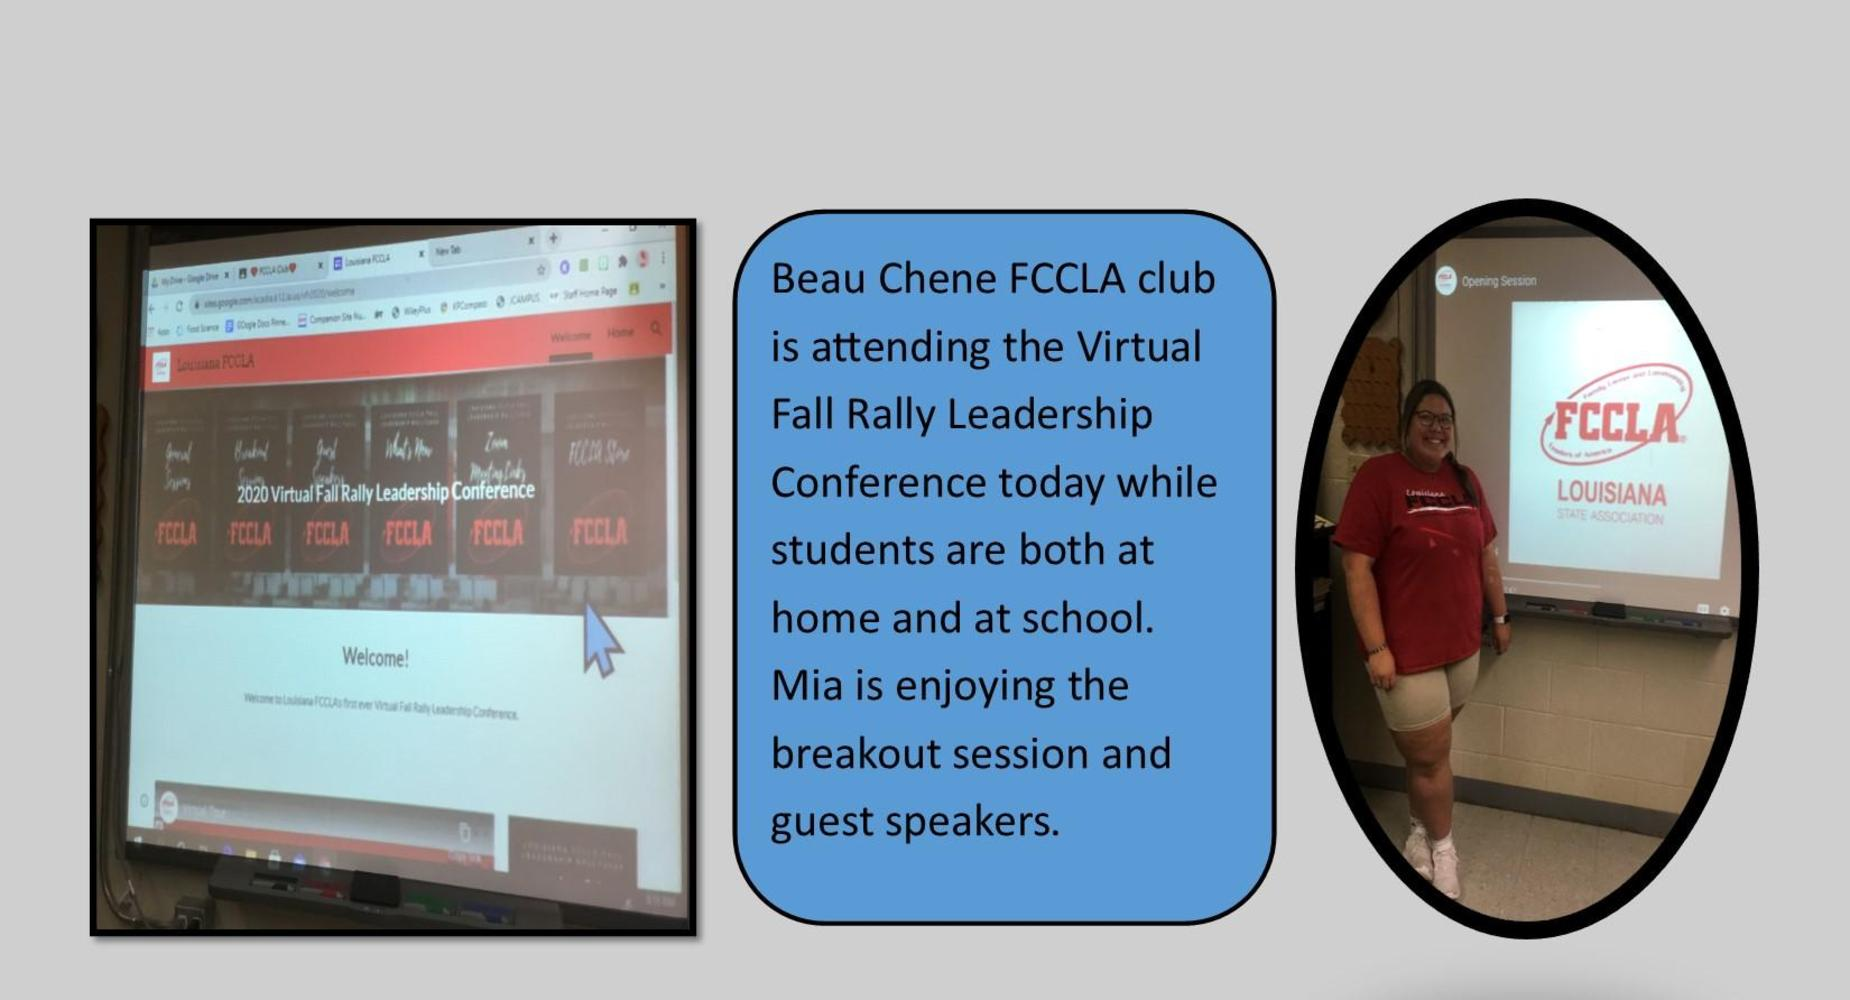 Virtual Fall Leadership Rally held at Beau Chene High School